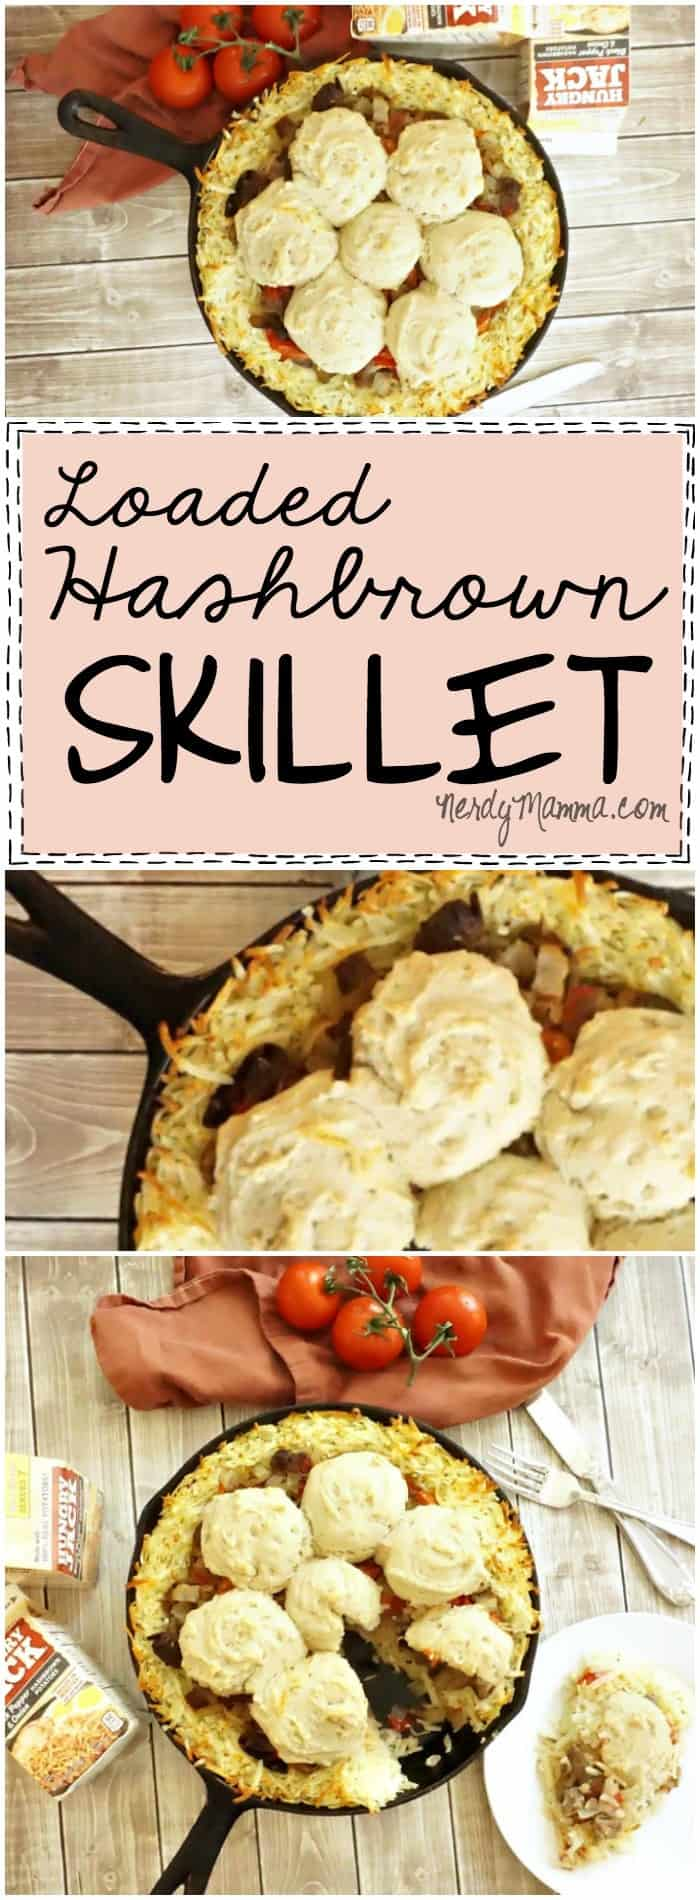 This recipe for a Loaded Hashbrown Skillet is so EASY! I love that it's a dinner recipe that uses harshbrowns...so awesome.